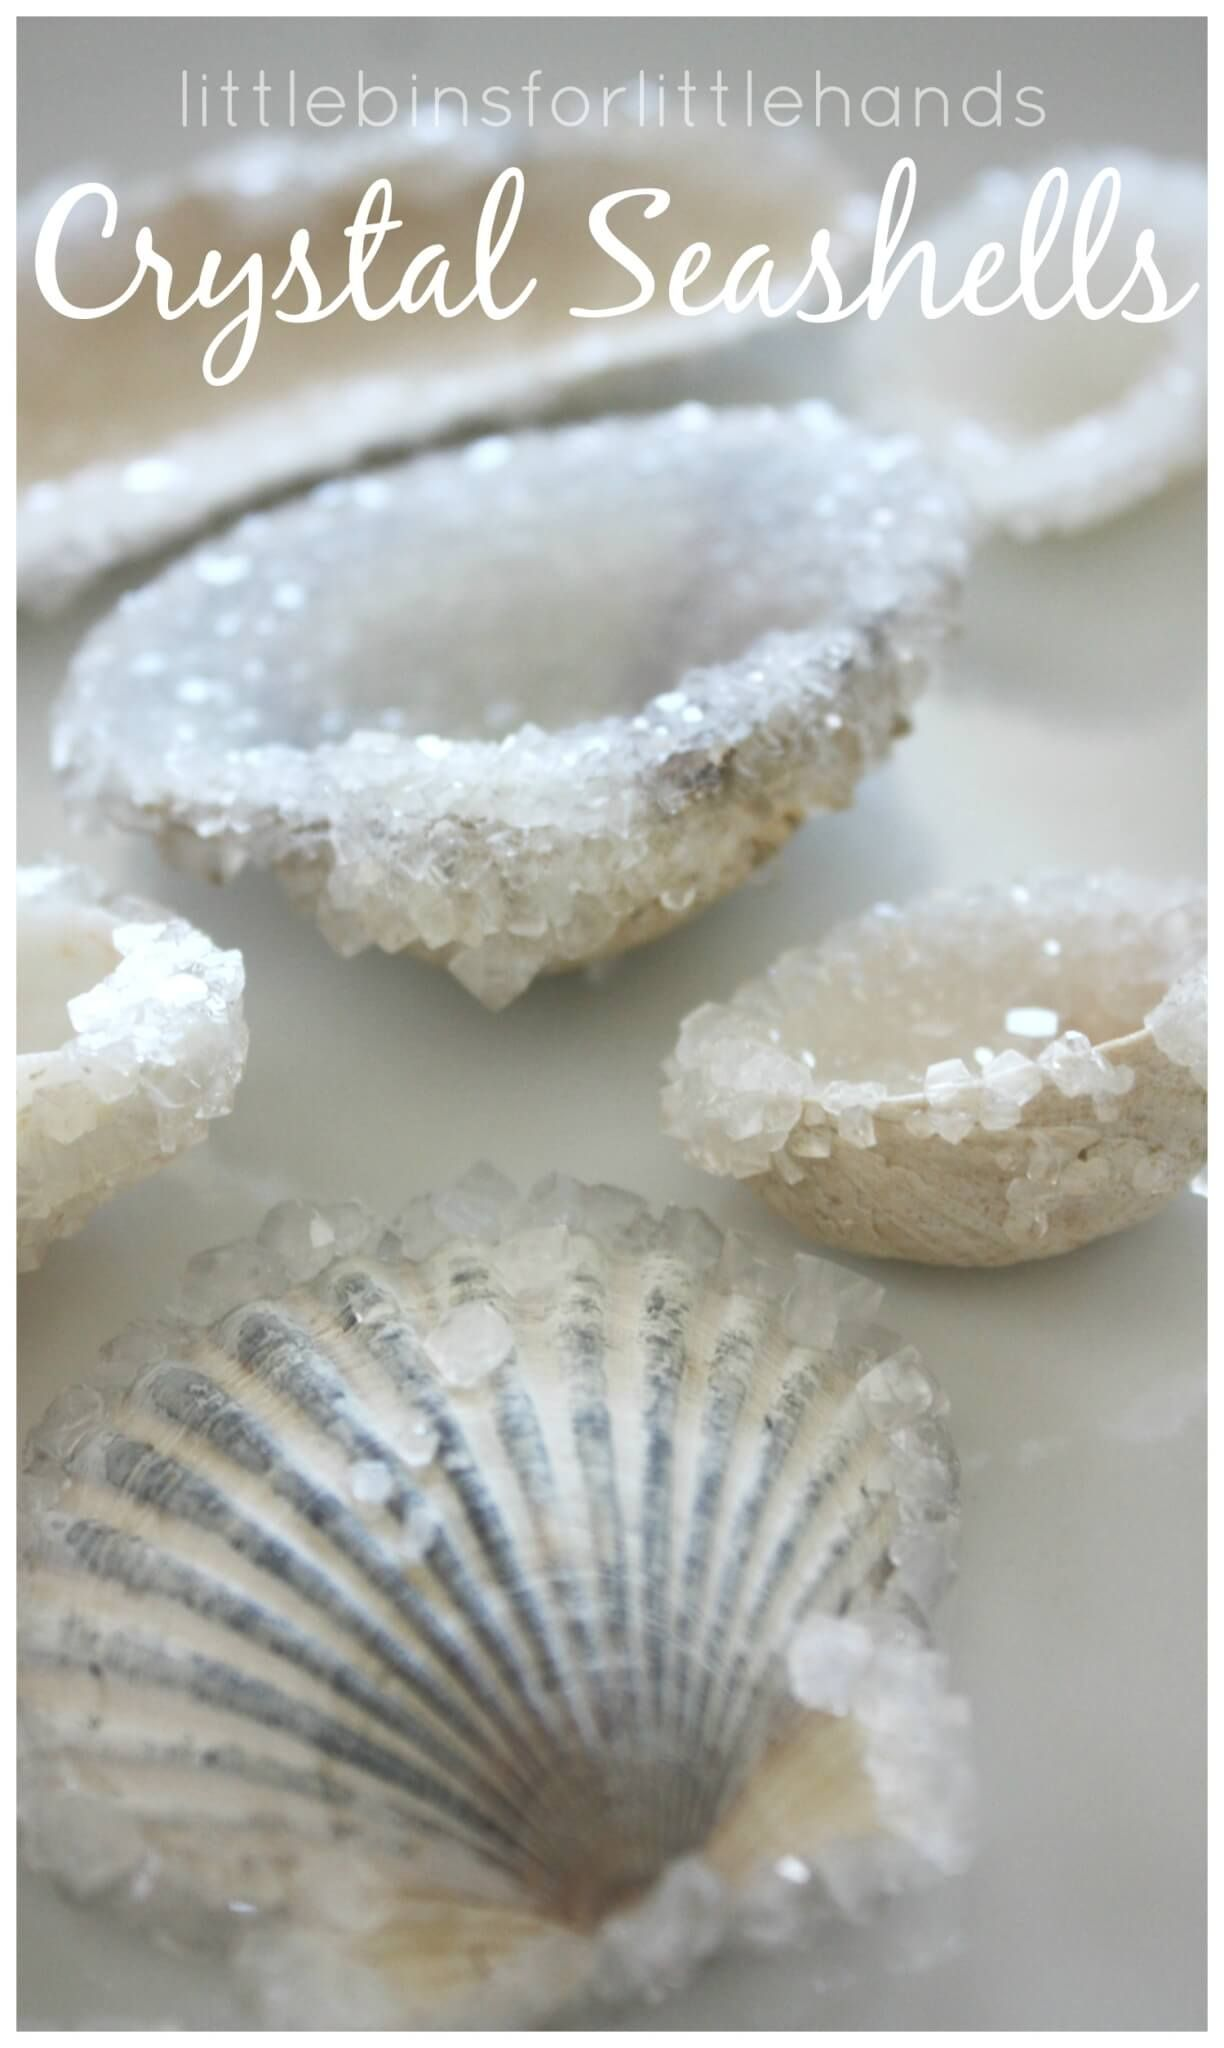 How To Make Crystal Seashells With Borax is part of Crystal seashells - Summer means the ocean and seashells for us! We like to get creative with our summer science experiments so we had to try this crystal seashells borax science experiment, which is actually an easy science experiment to set up! Simply mix the solution and set aside  Over the course of 24 hours, you can observe some neat changes! Growing crystals on seashells is an awesome STEM project for kids! CRYSTAL SEASHELLS SCIENCE EXPERIMENT WITH BORAX! Grow Crystal Seashells Overnight! There are super cool ways to explore the sciences for each season! For summer, we decided to experiment with growing borax